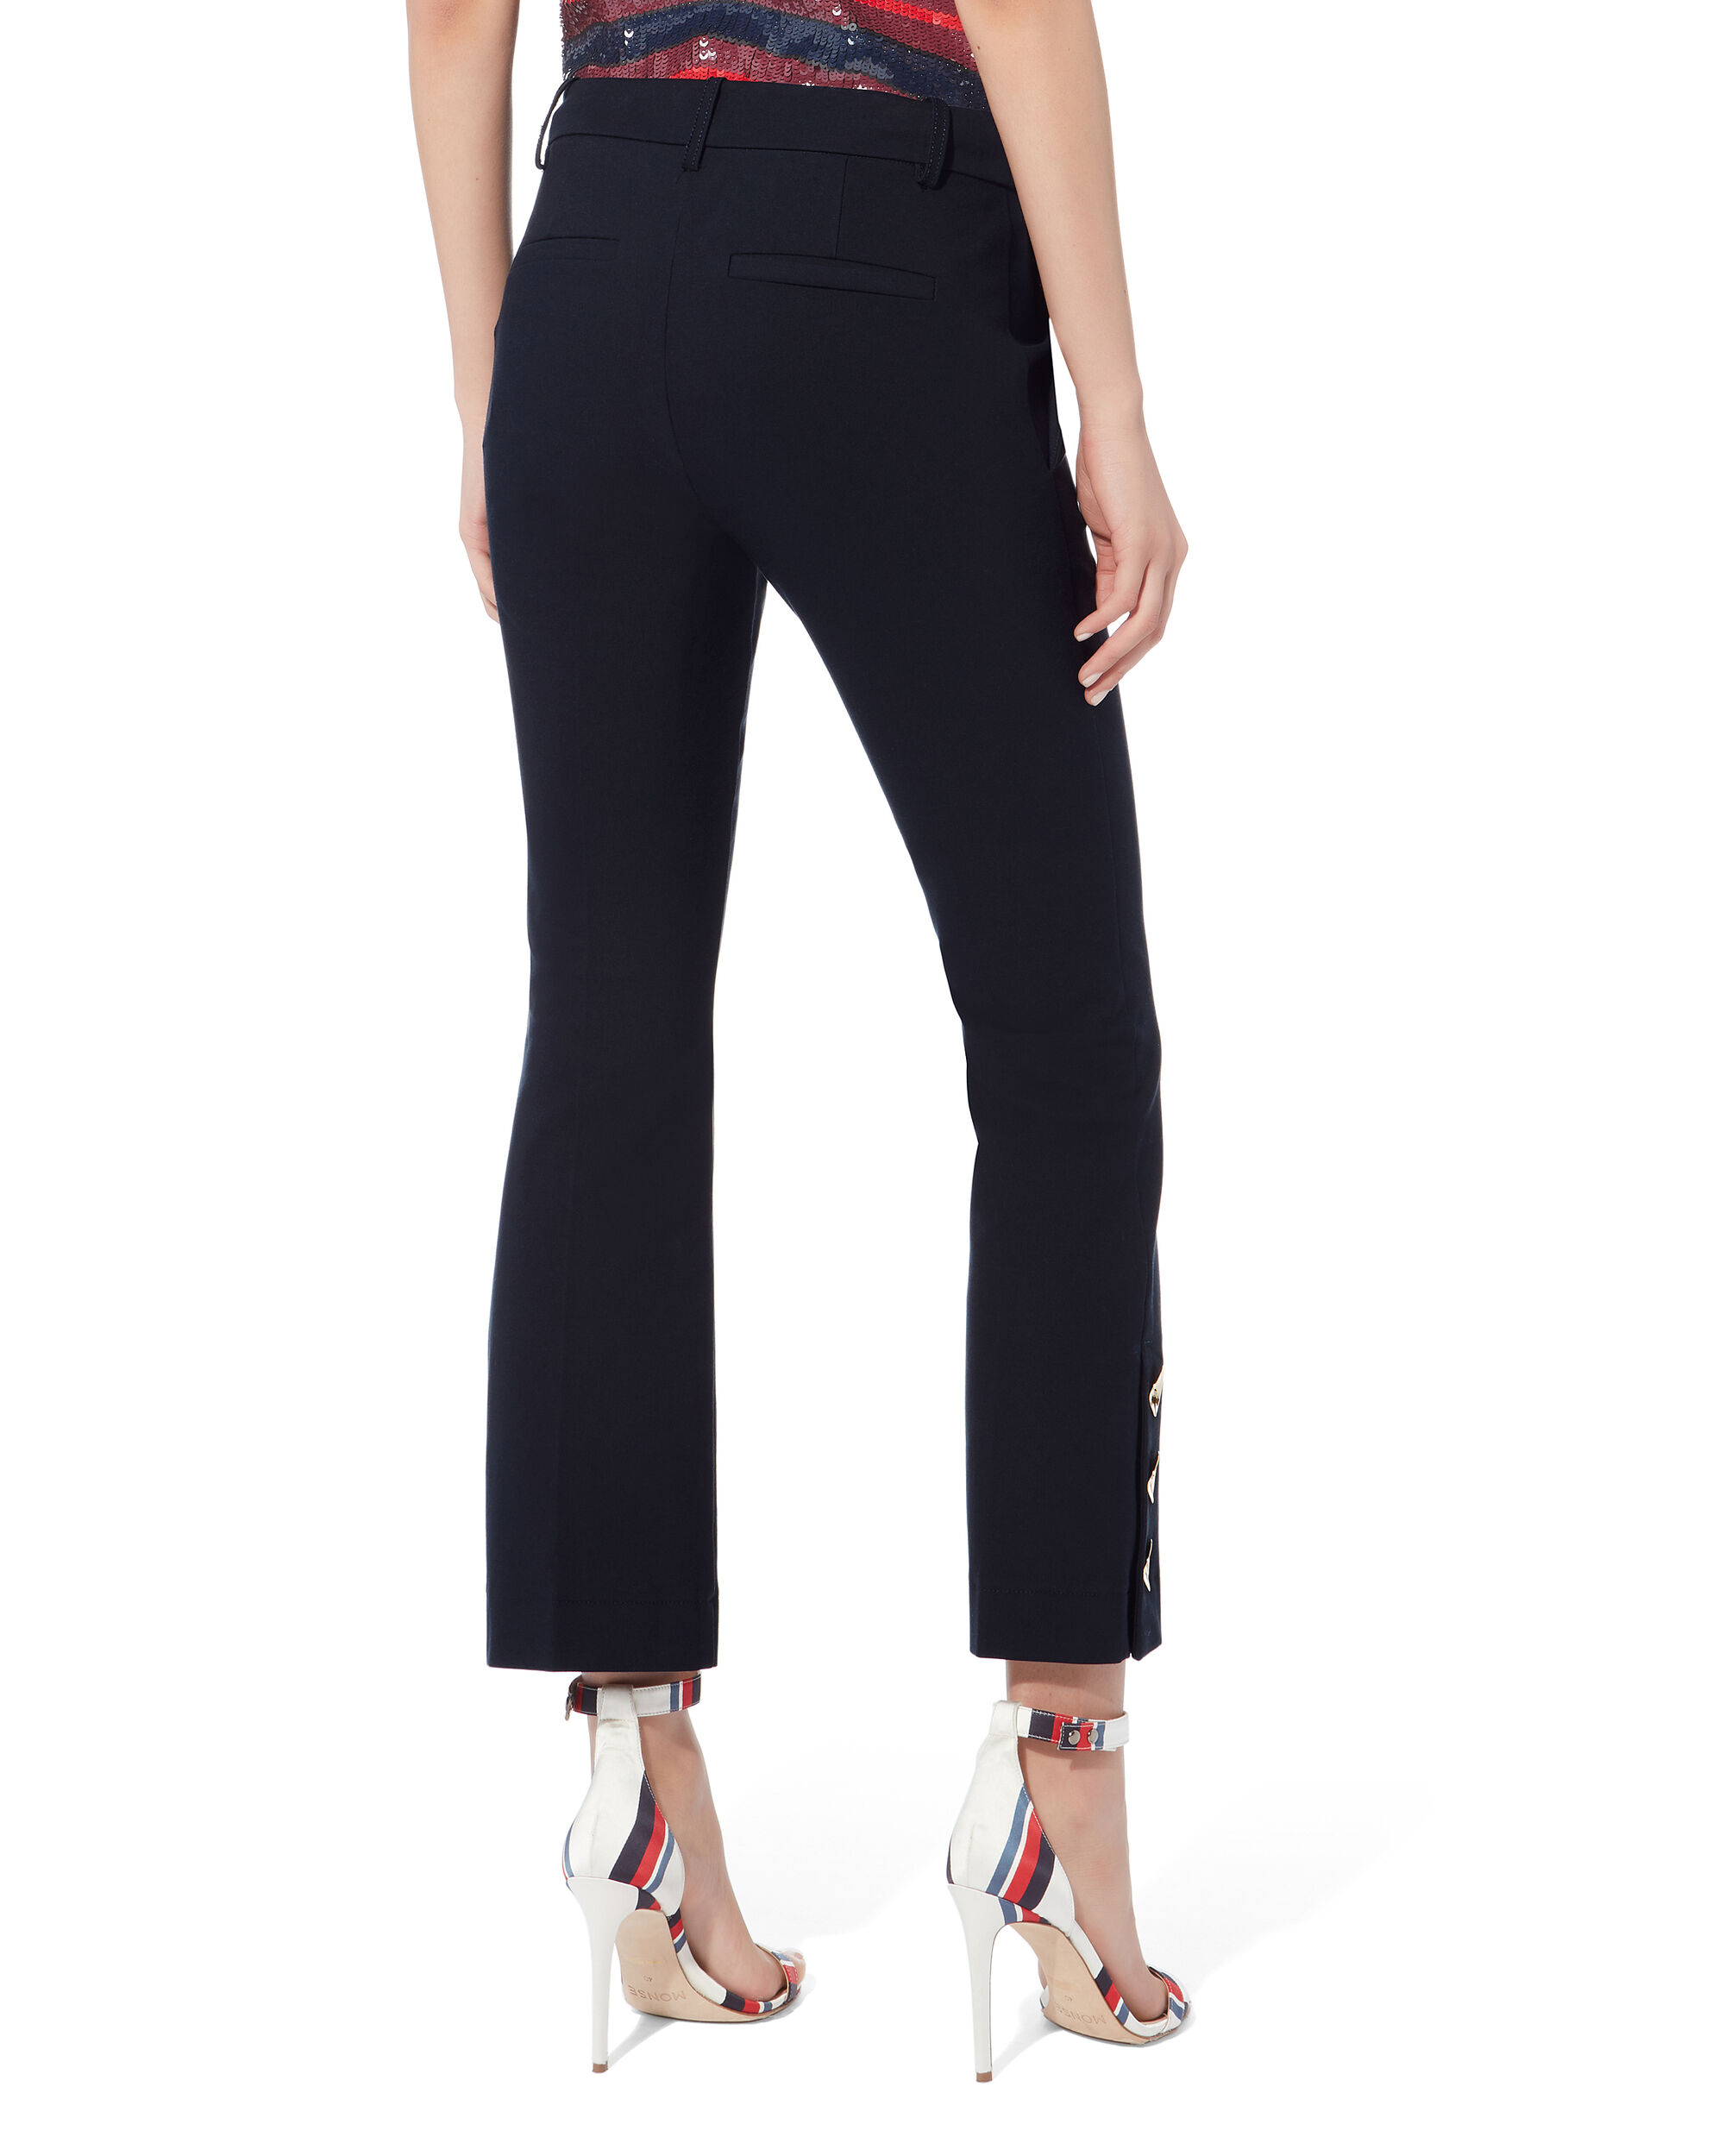 Slit Hem Crop Flare Trousers, NAVY, hi-res